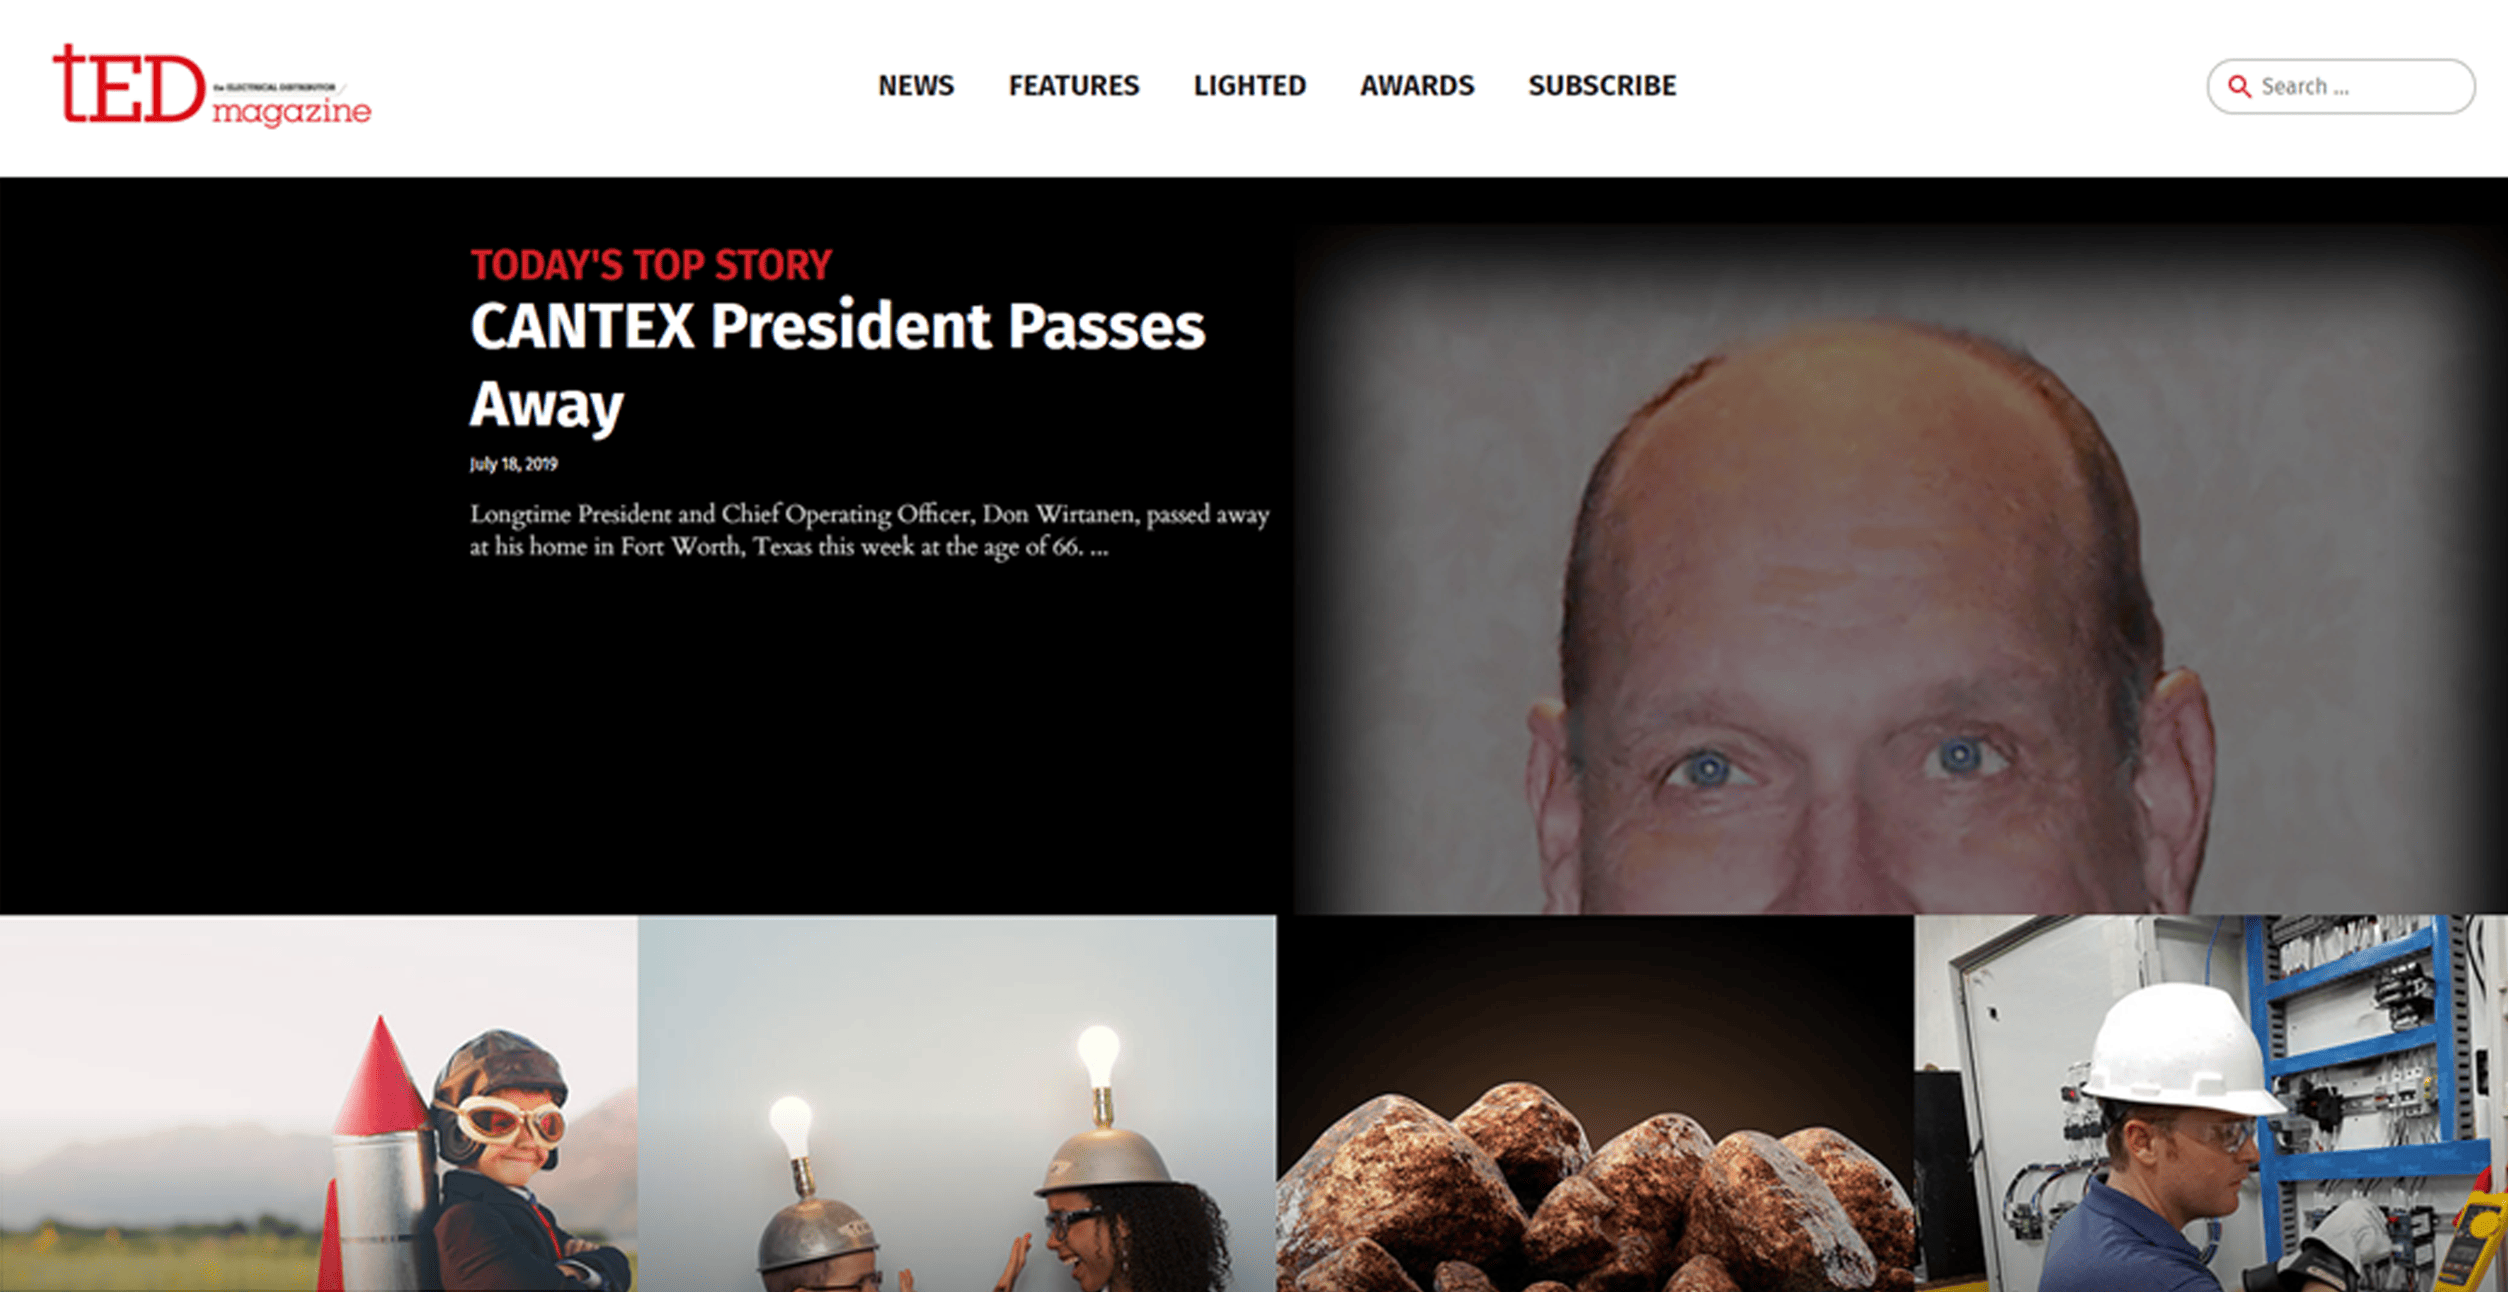 Don Wirtanen Honored with Lead Story in TED Magazine